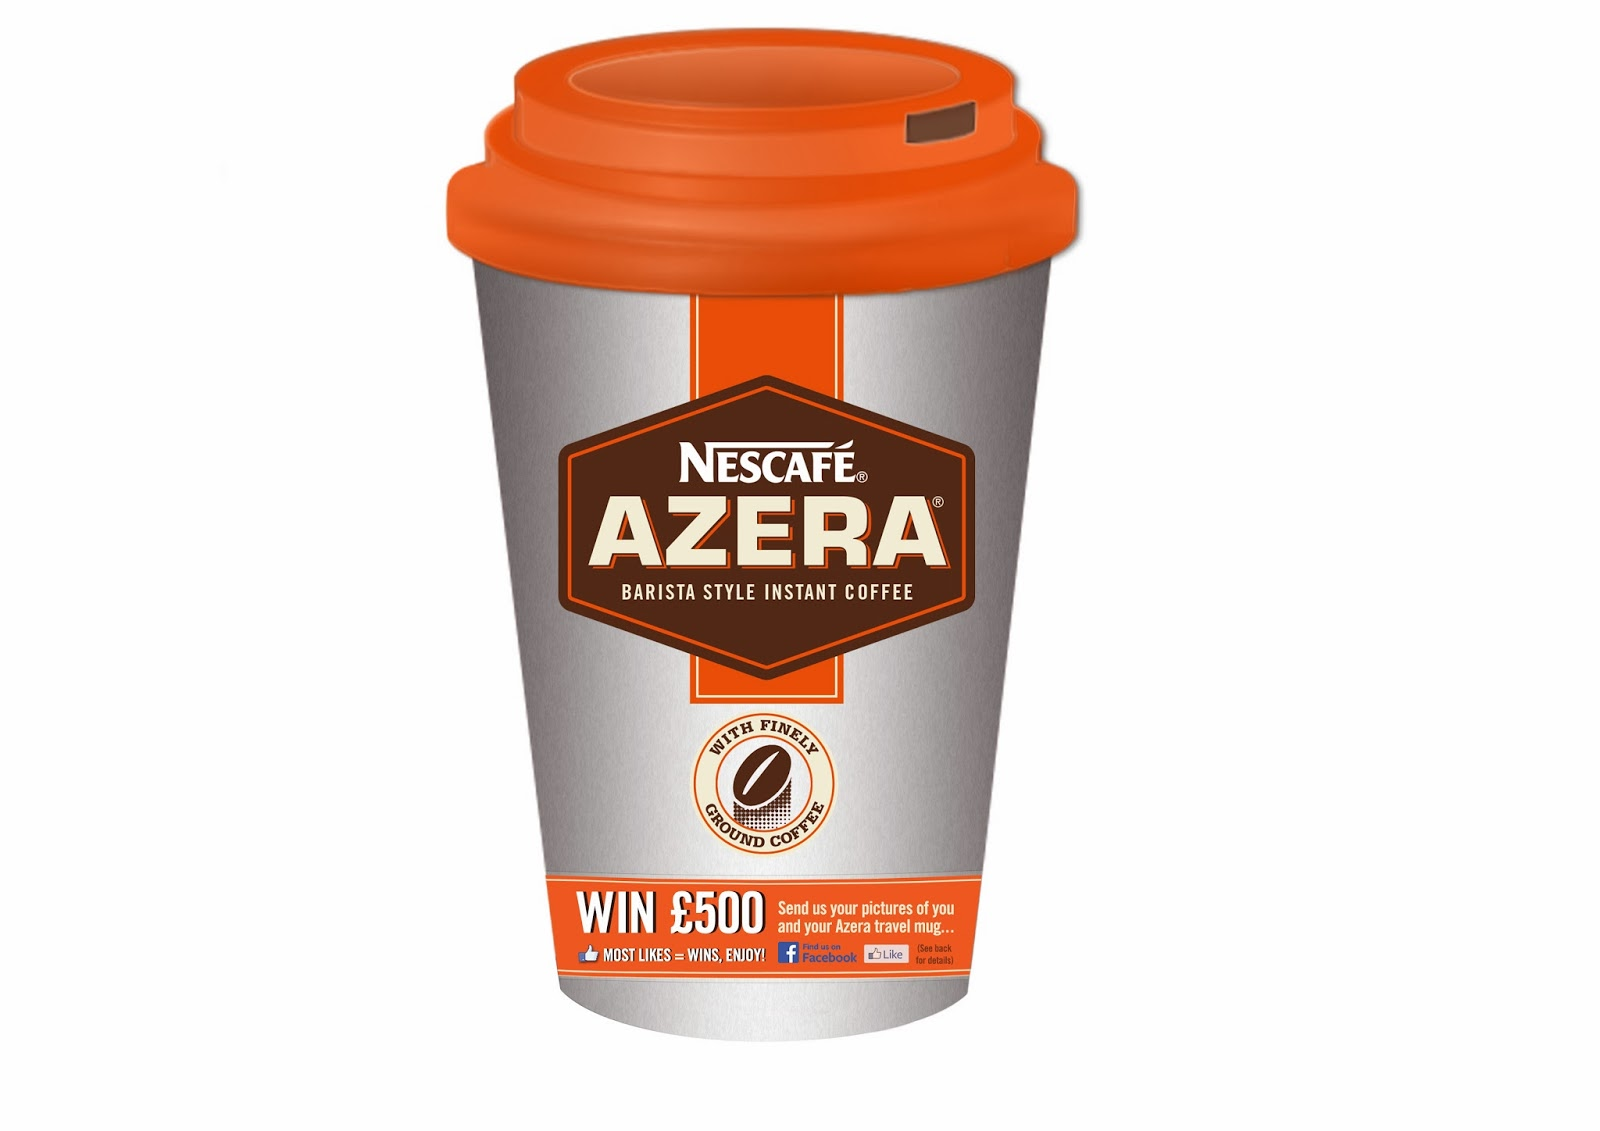 Nescafe Azera Innovation idea 2014